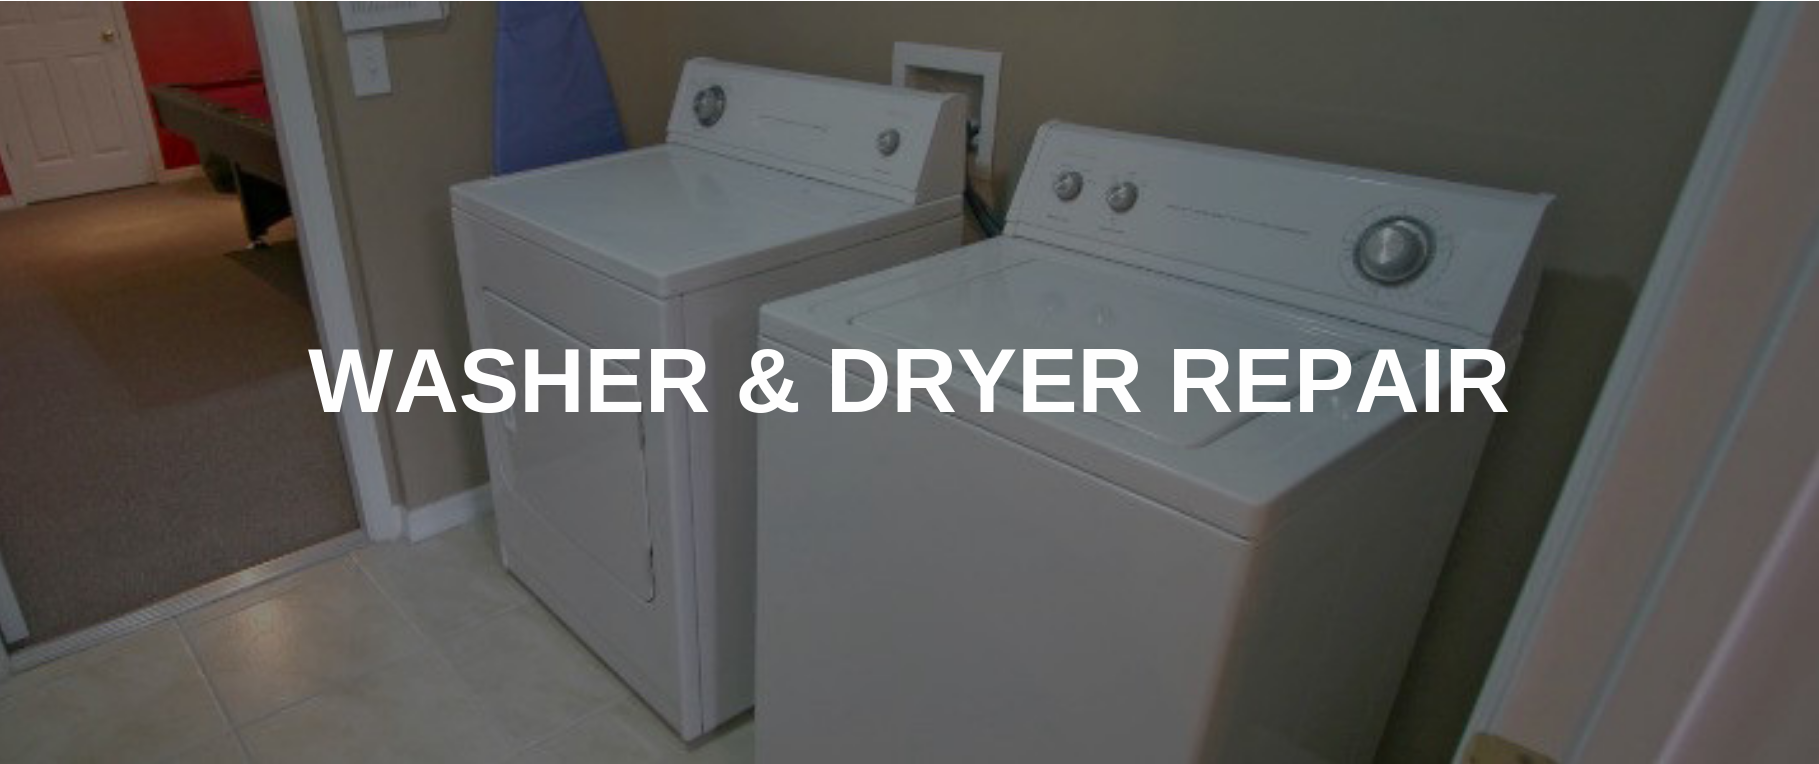 washing machine repair milford